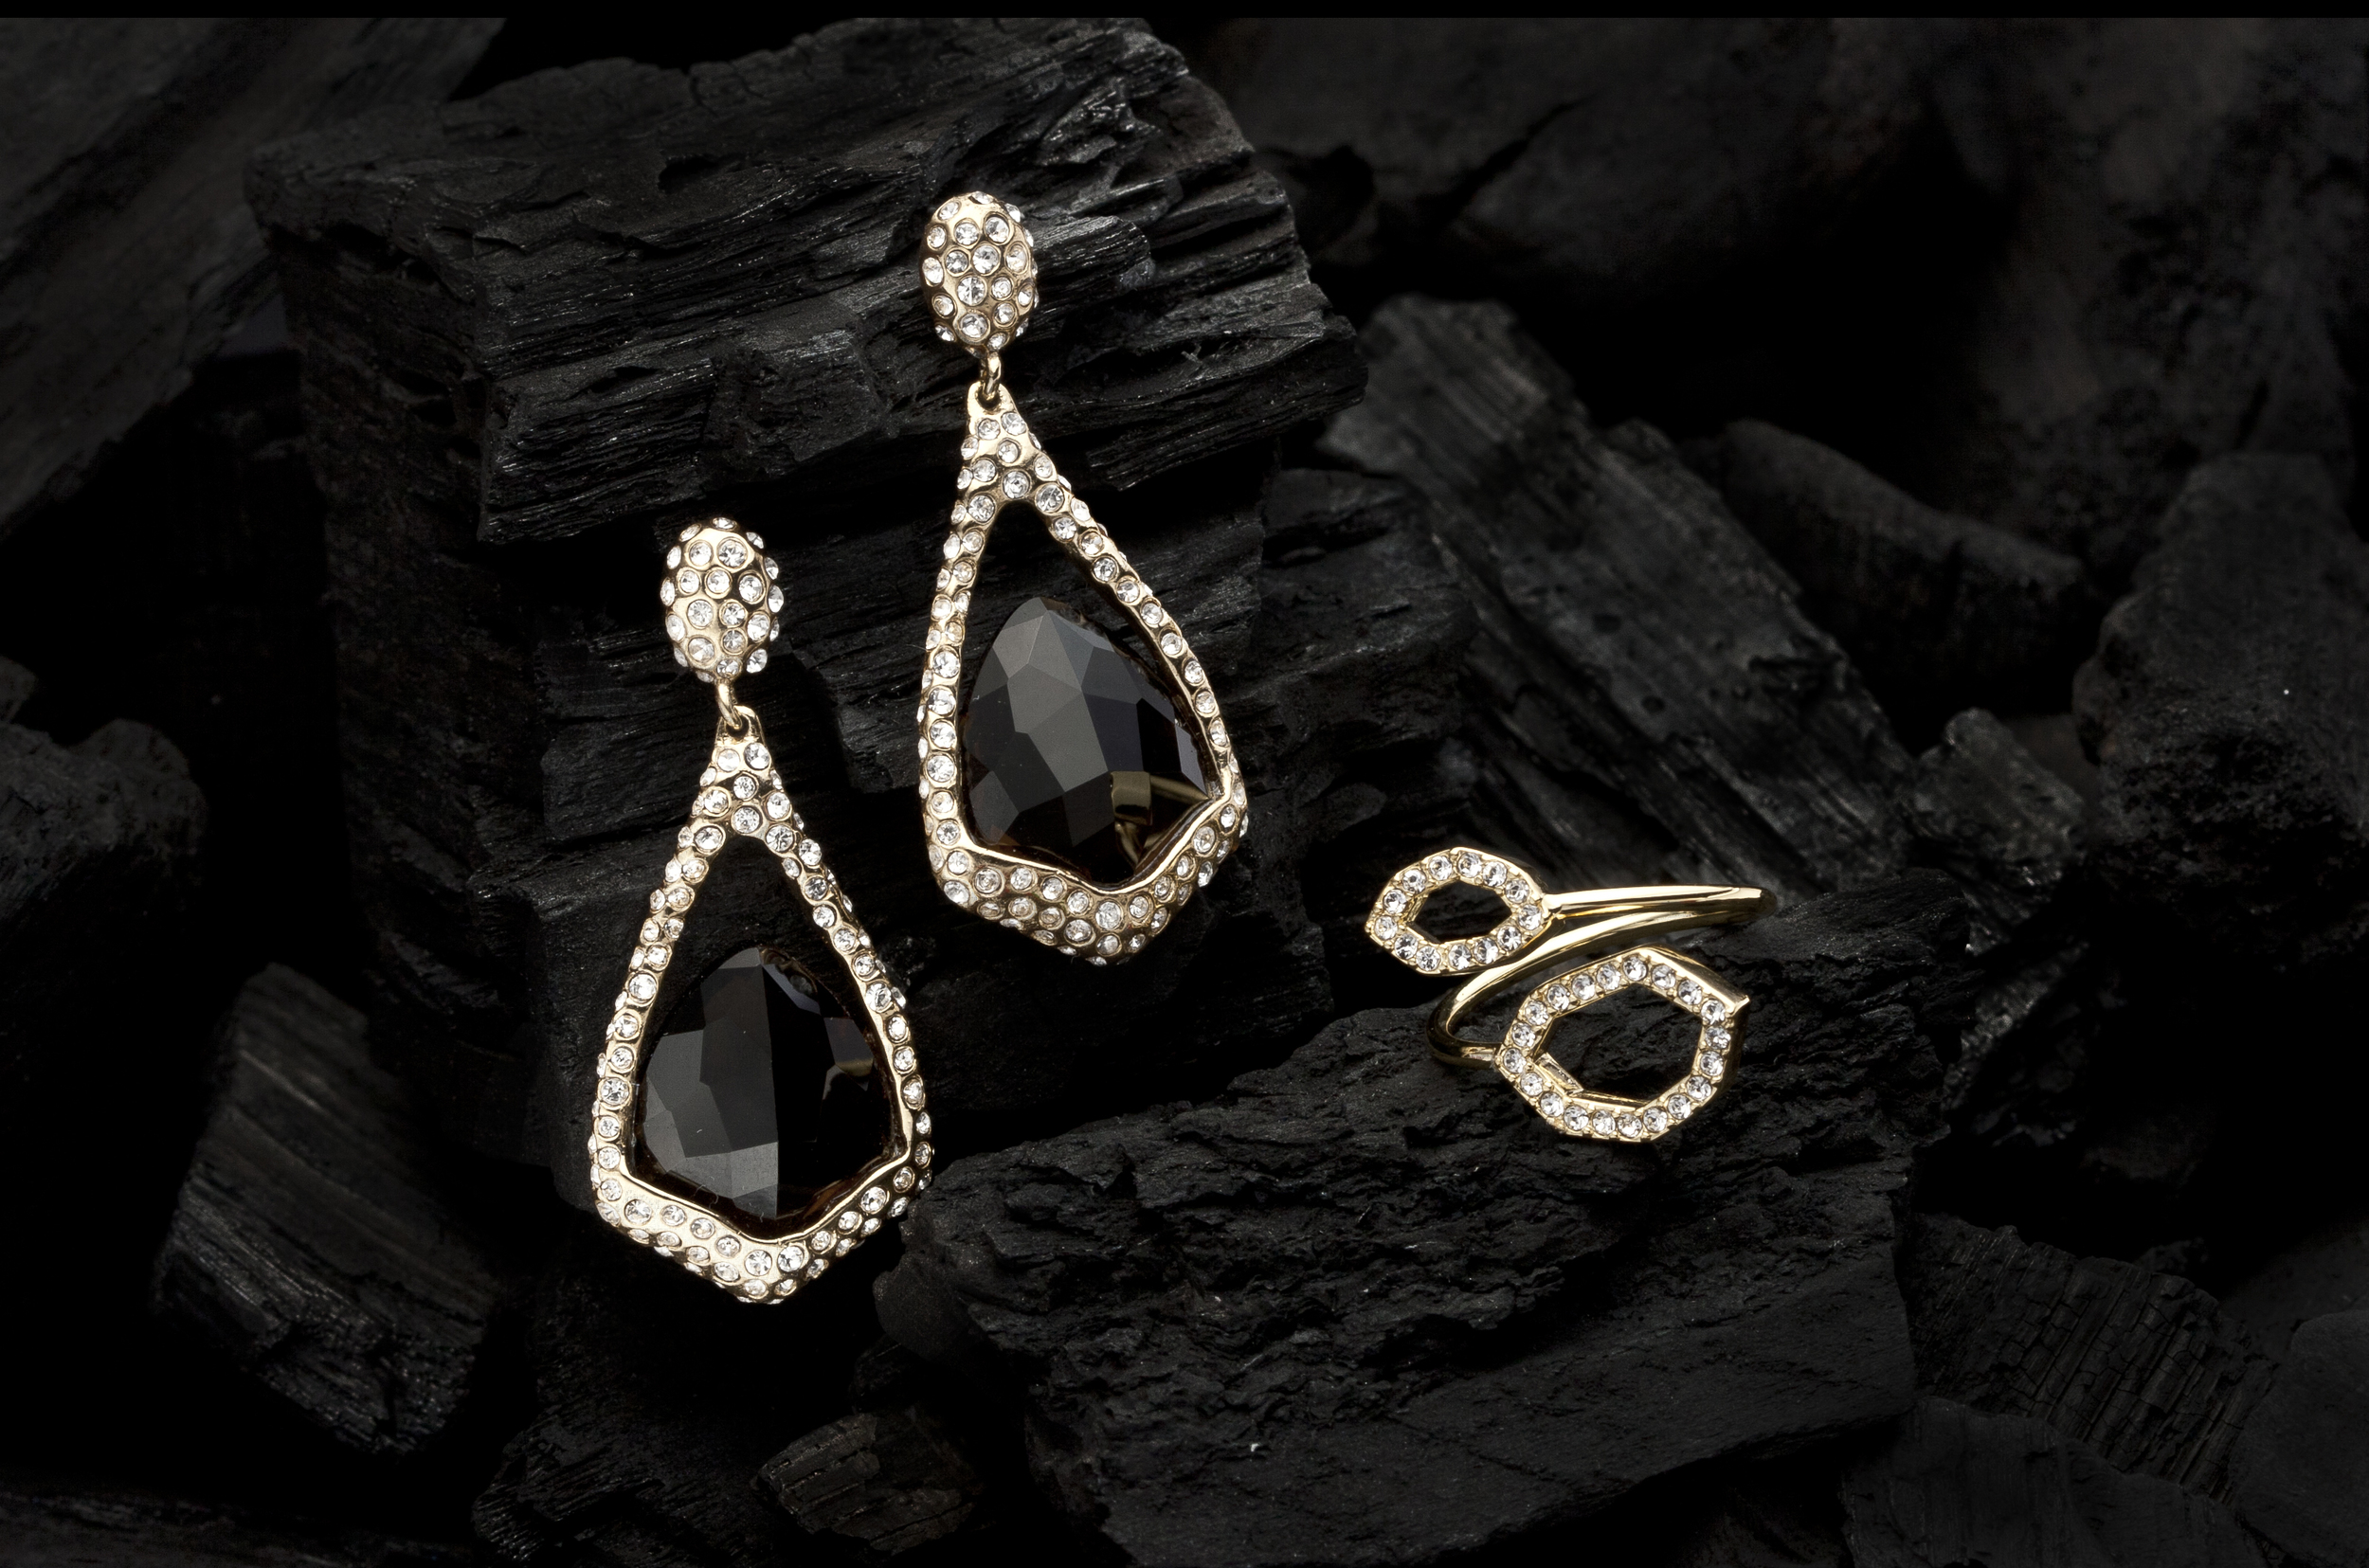 jewelry_Product_Photography_Example.jpg